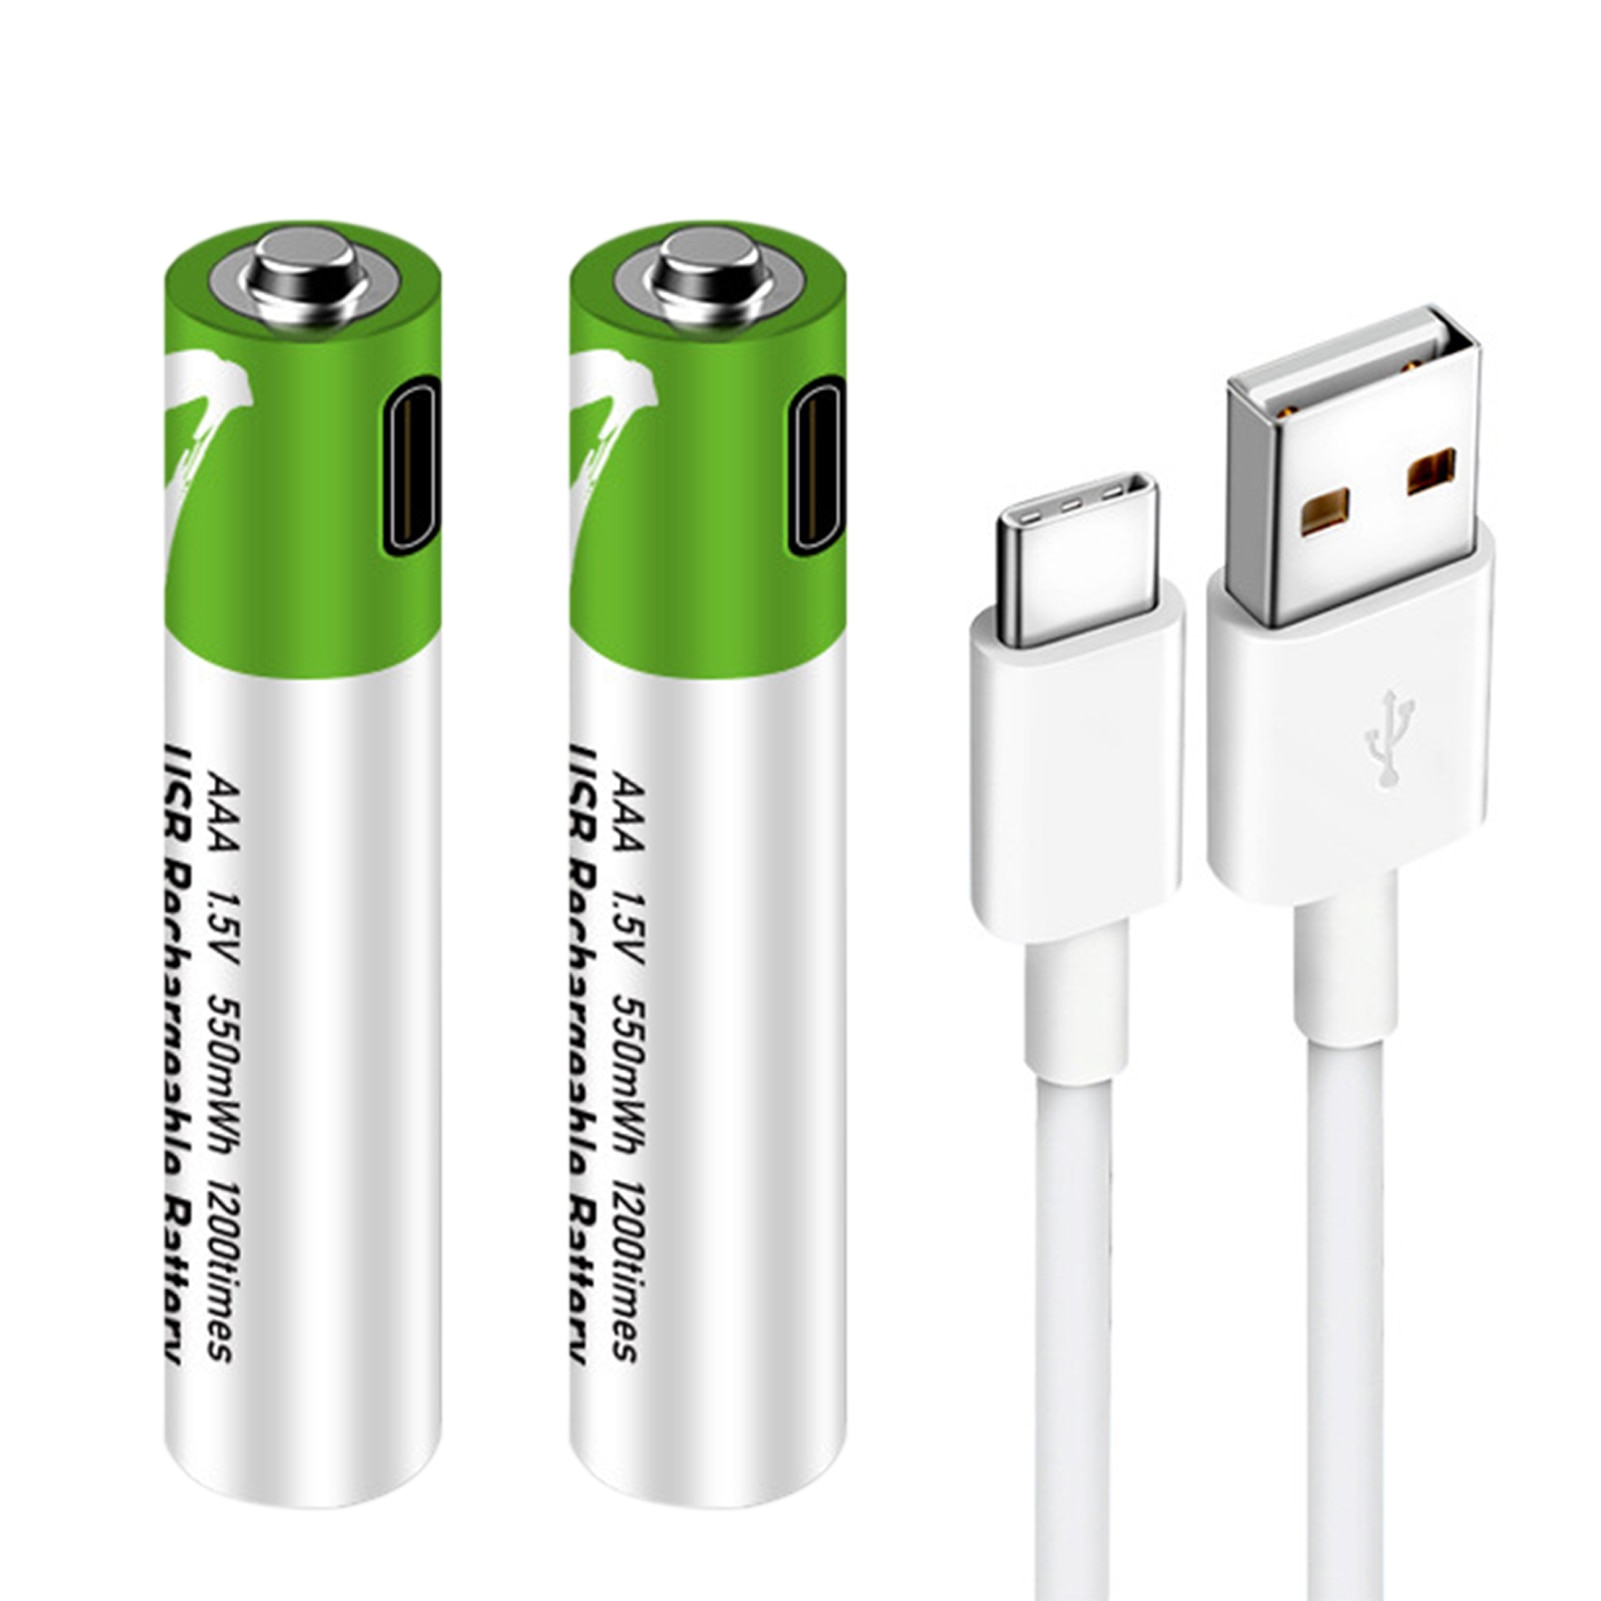 2Pcs 1.5v Usb Type-c Port Direct Charge Rechargeable 7th Lithium Battery Simple Professional Cell DH